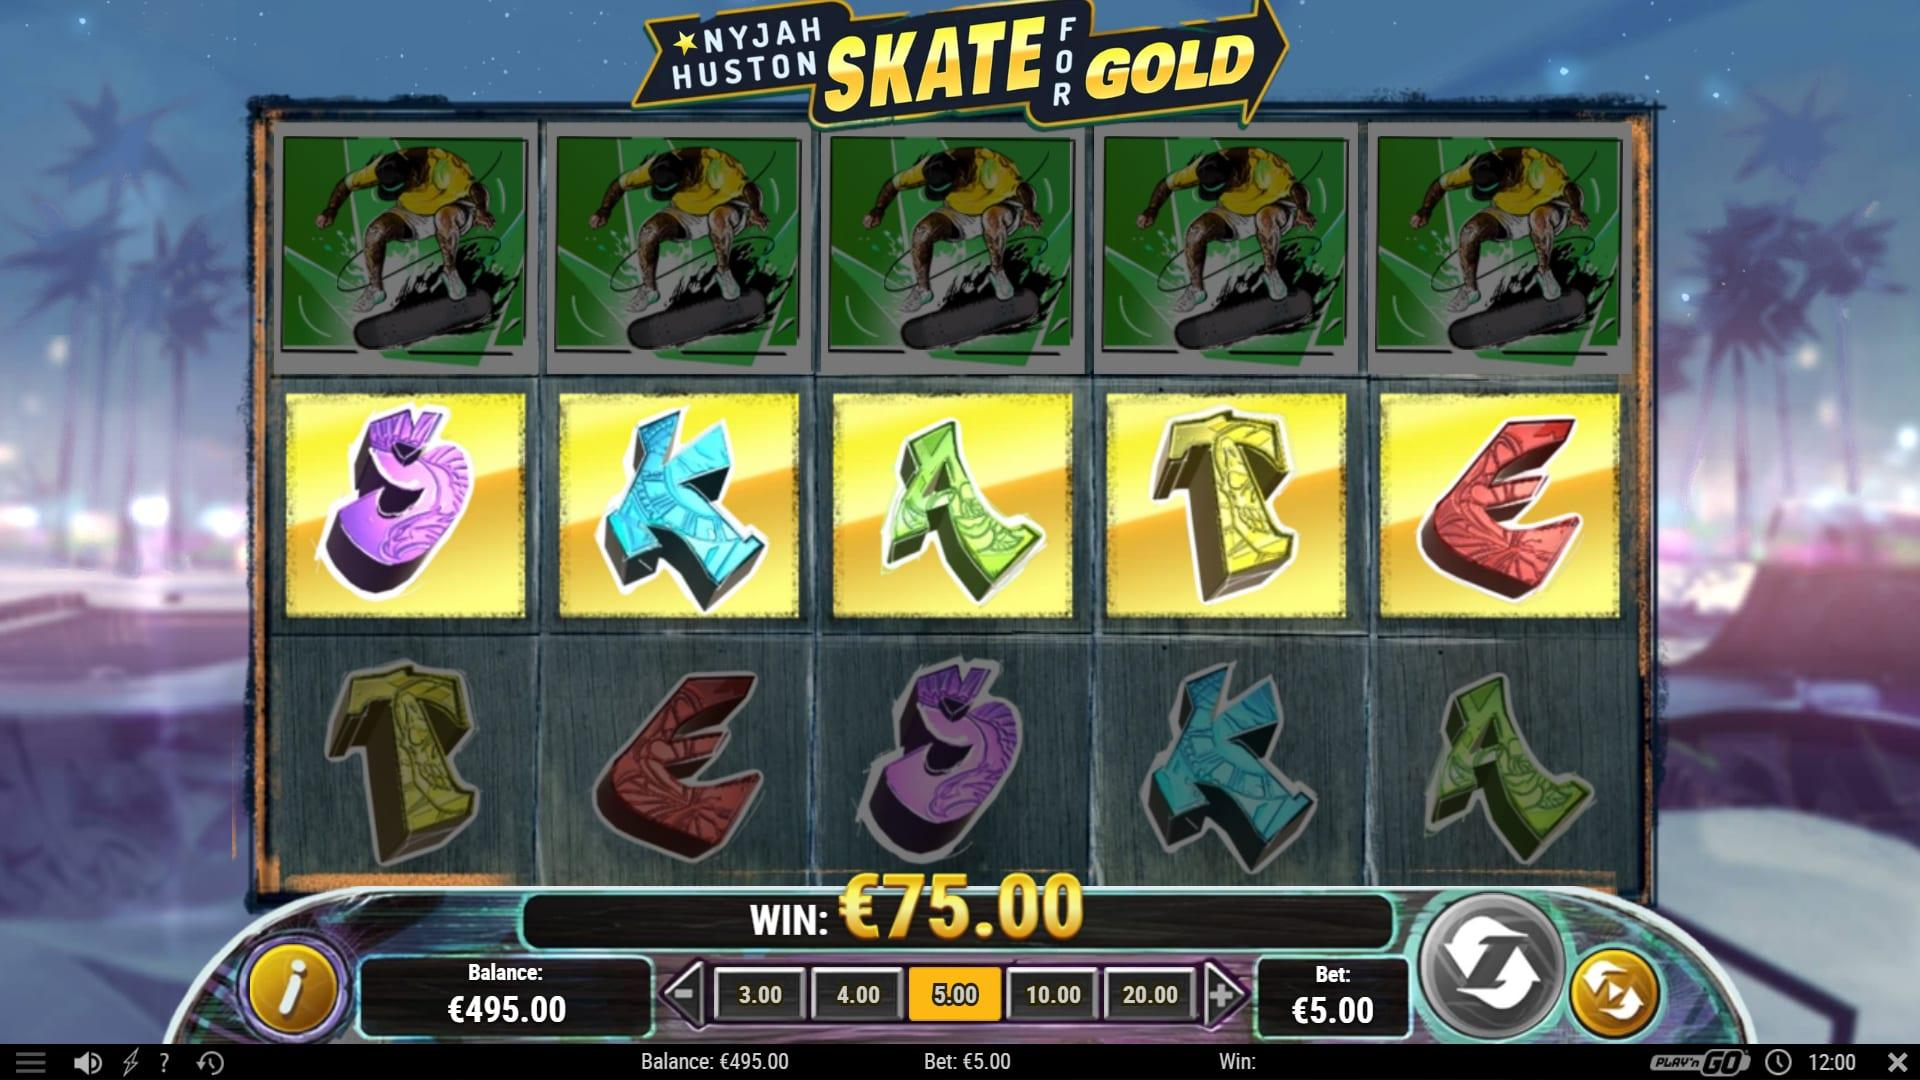 Bonus Features and Free Spins: If you land the golden S, K, A, T, and E letters in that order, you will receive 12 Free Spins.